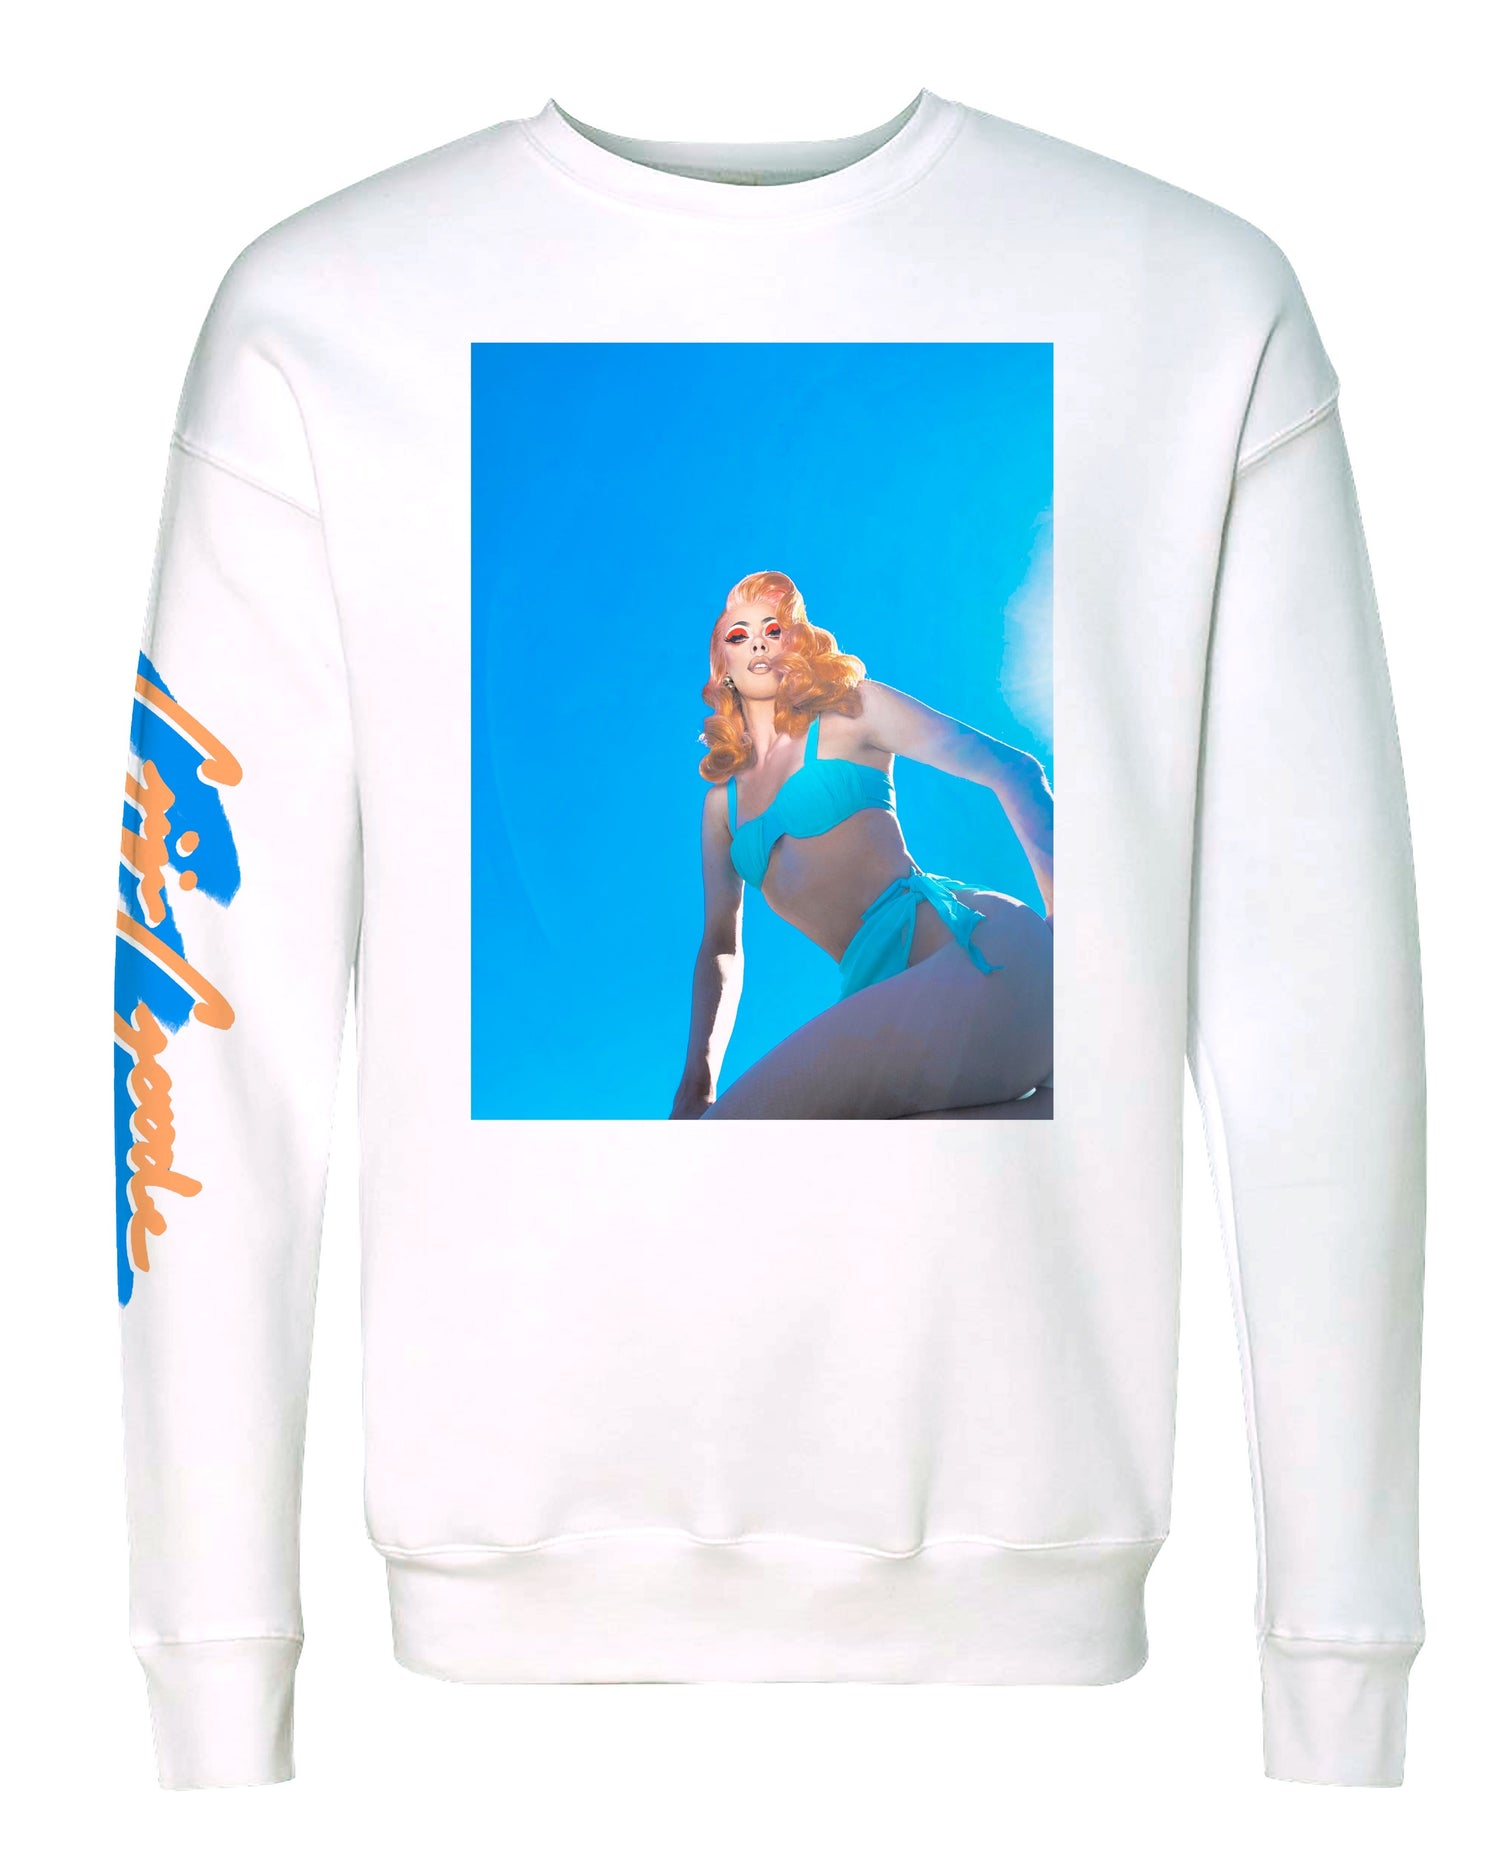 'True Blue' Gigi Sweatshirt - regular price $60/now $48